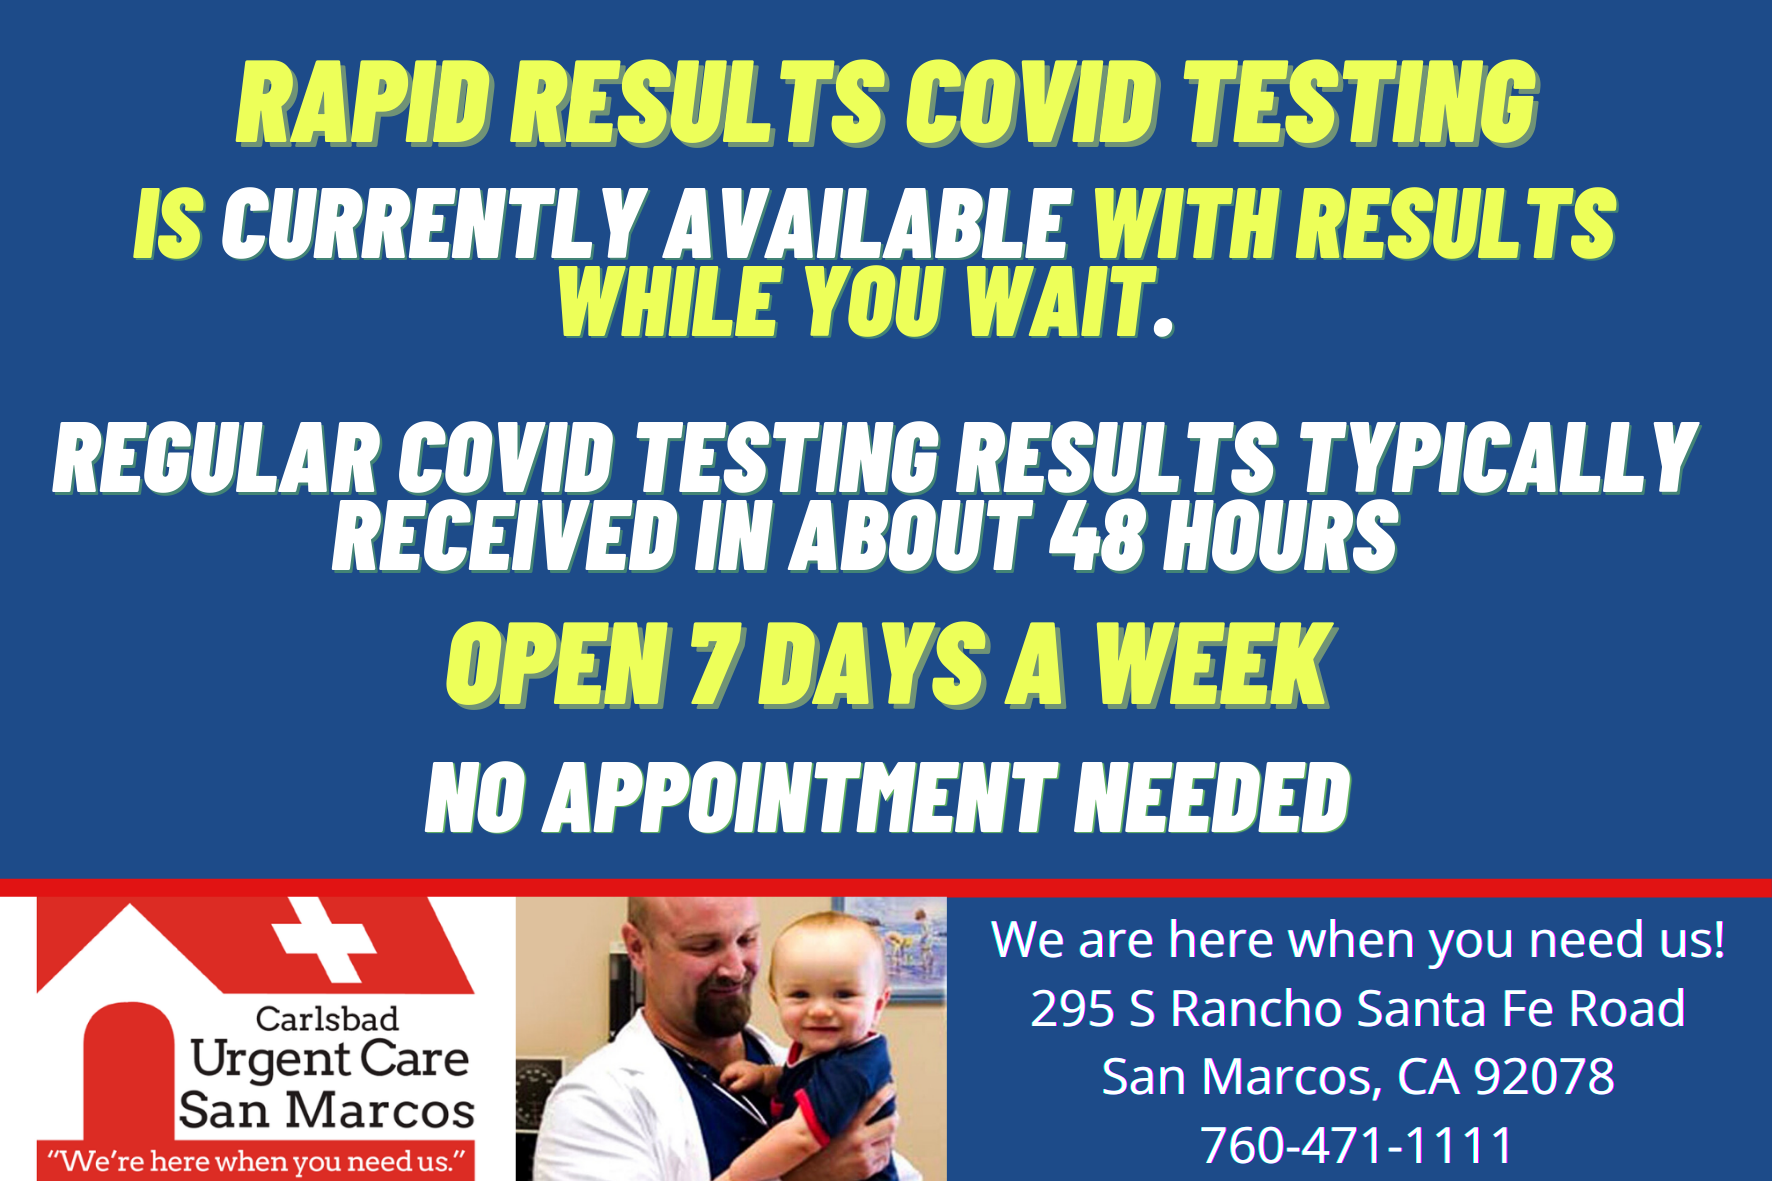 San Marcos Urgent Provides Rapid Results Covid Testing San Marcos Urgent Care Every Day